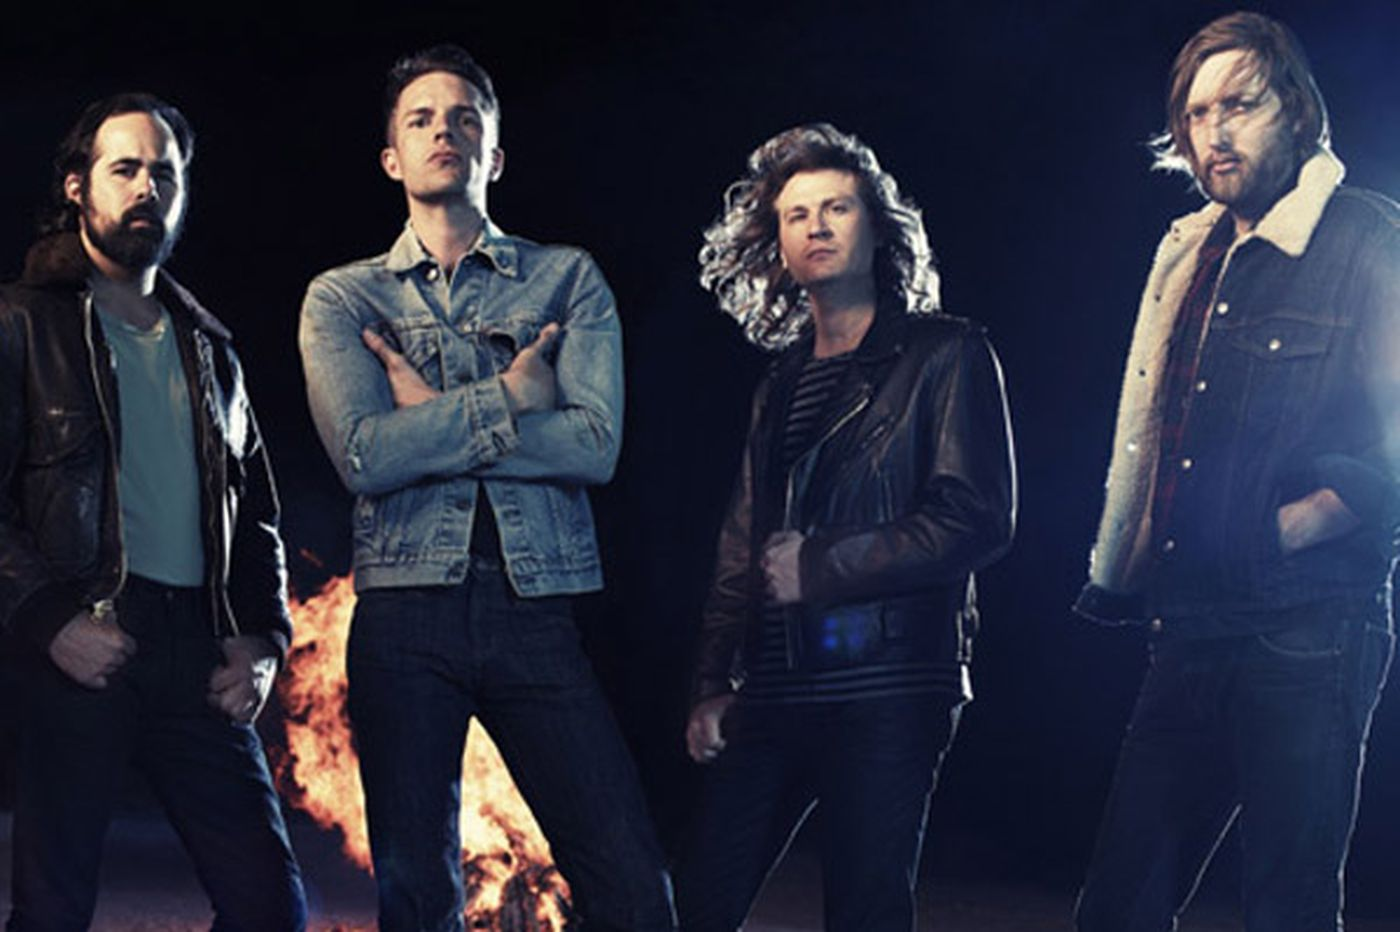 The Killers play it straight, with verve